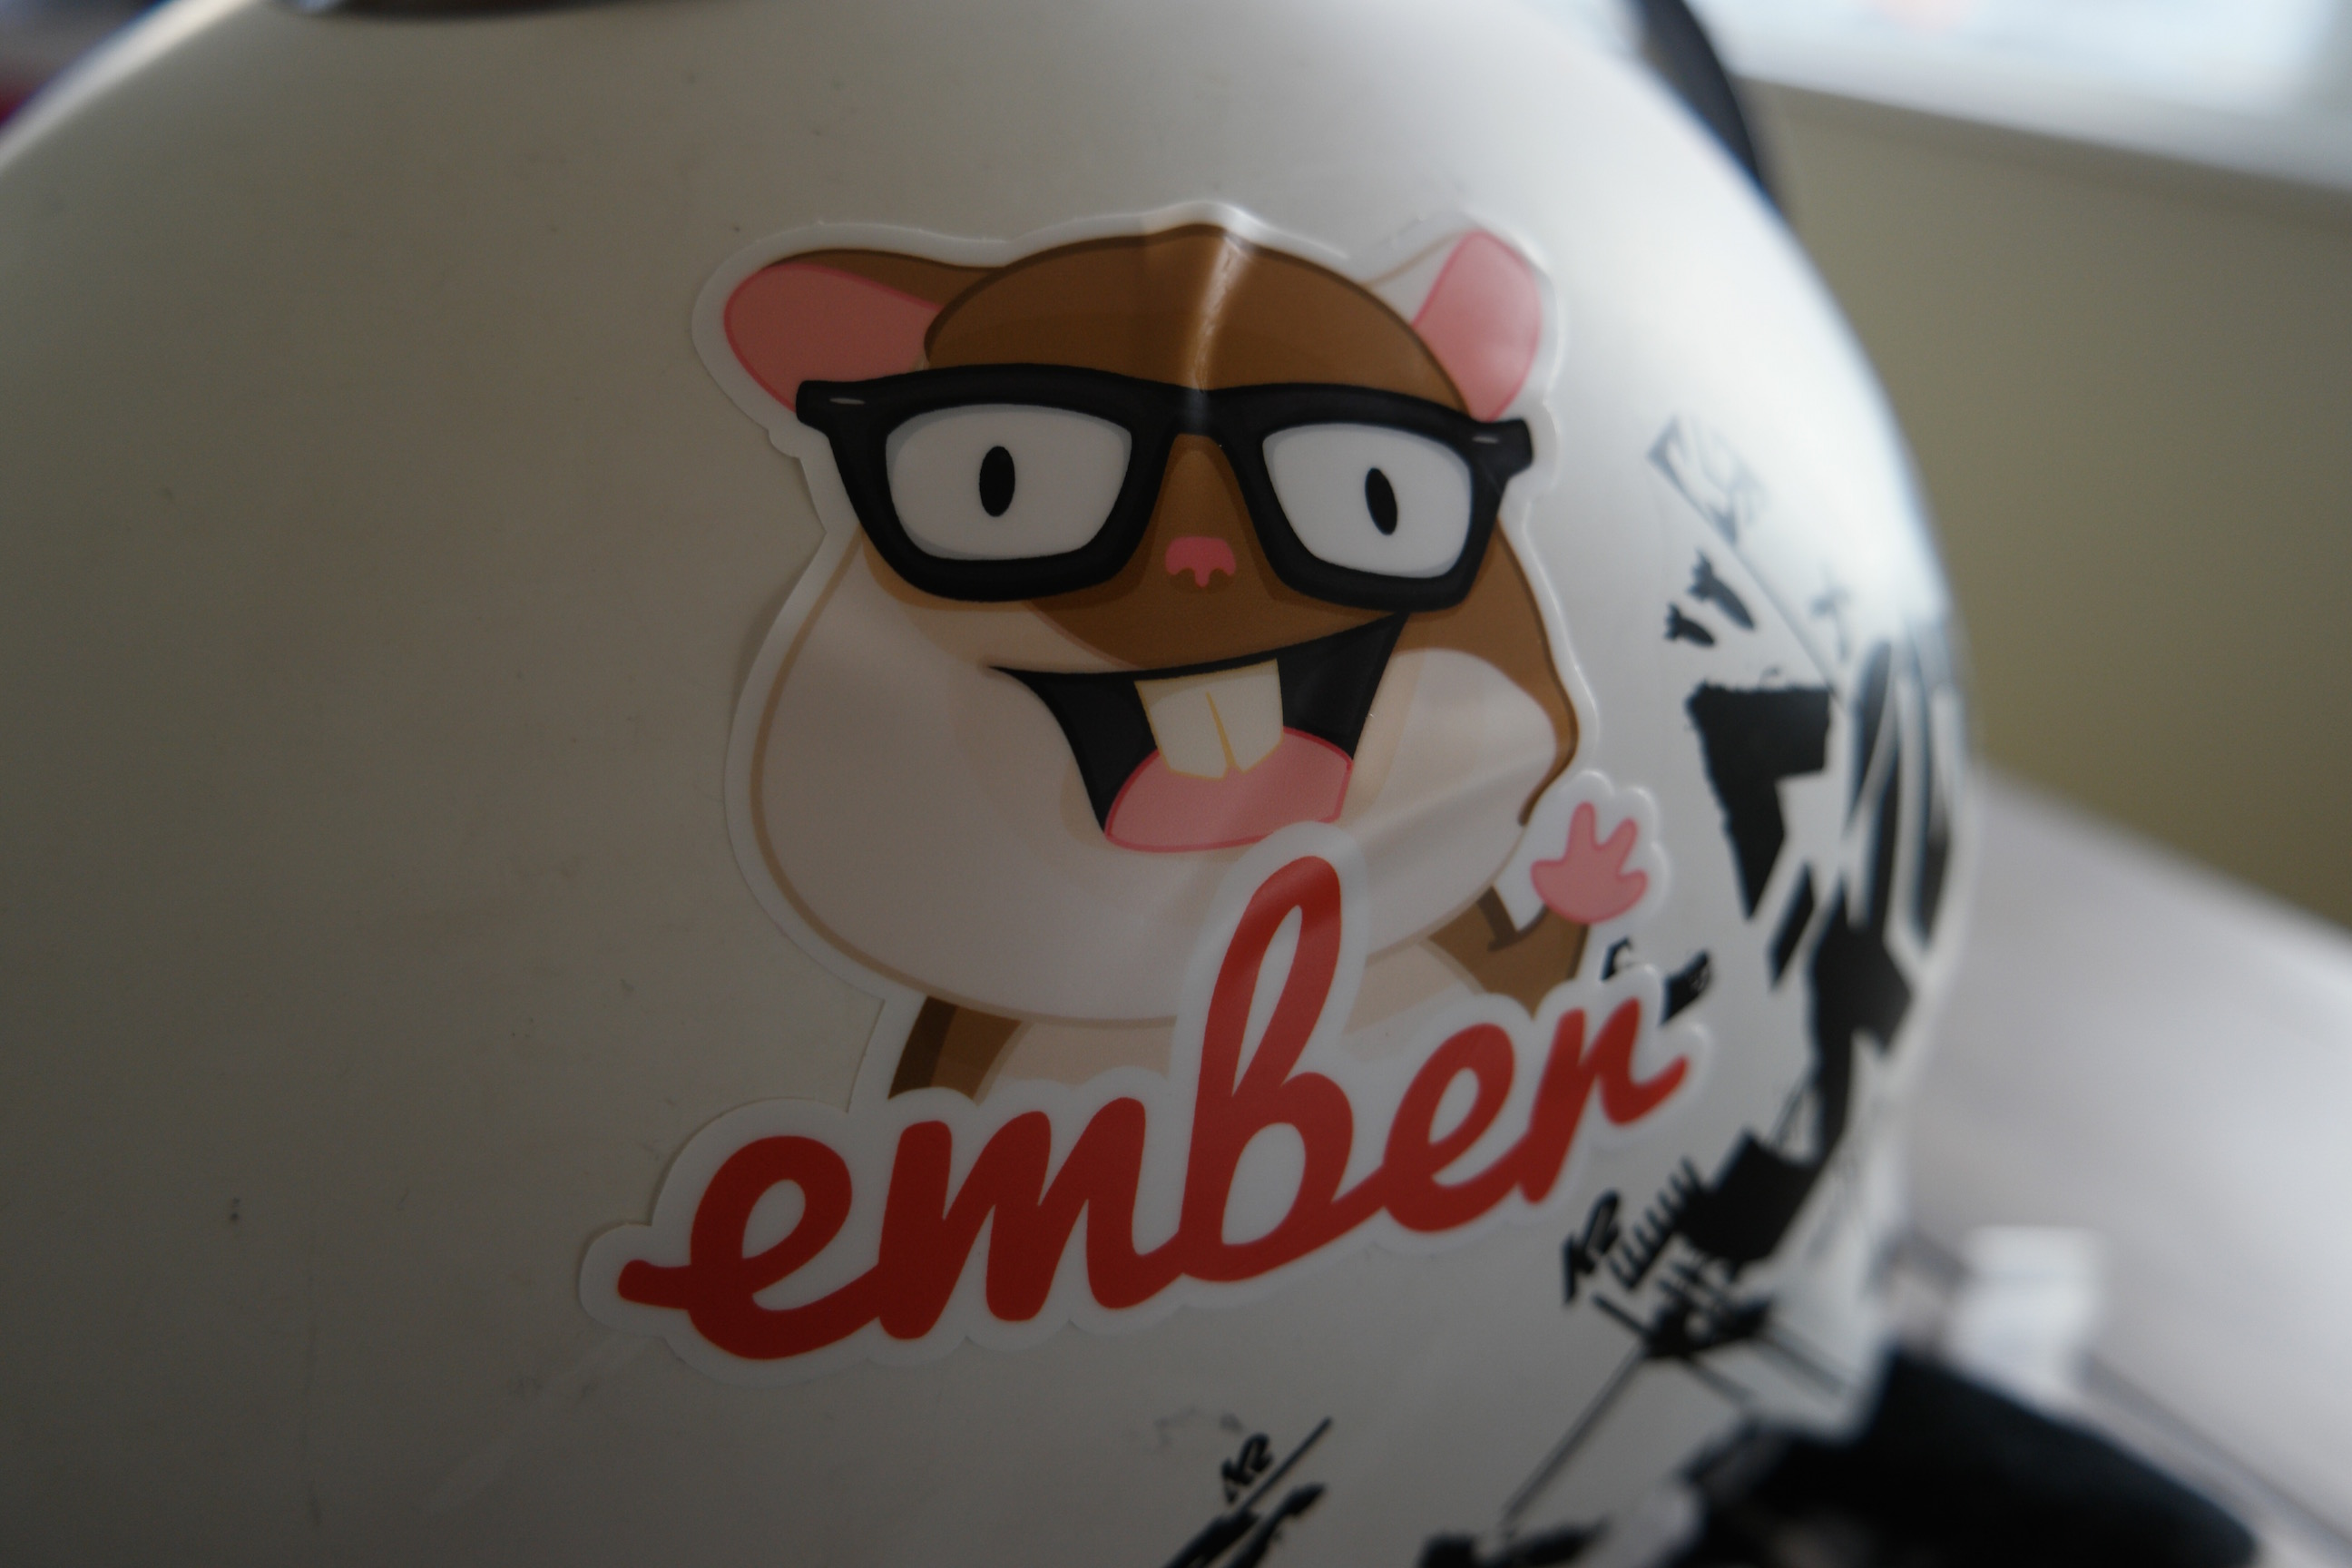 Helmet stickers on curved surface